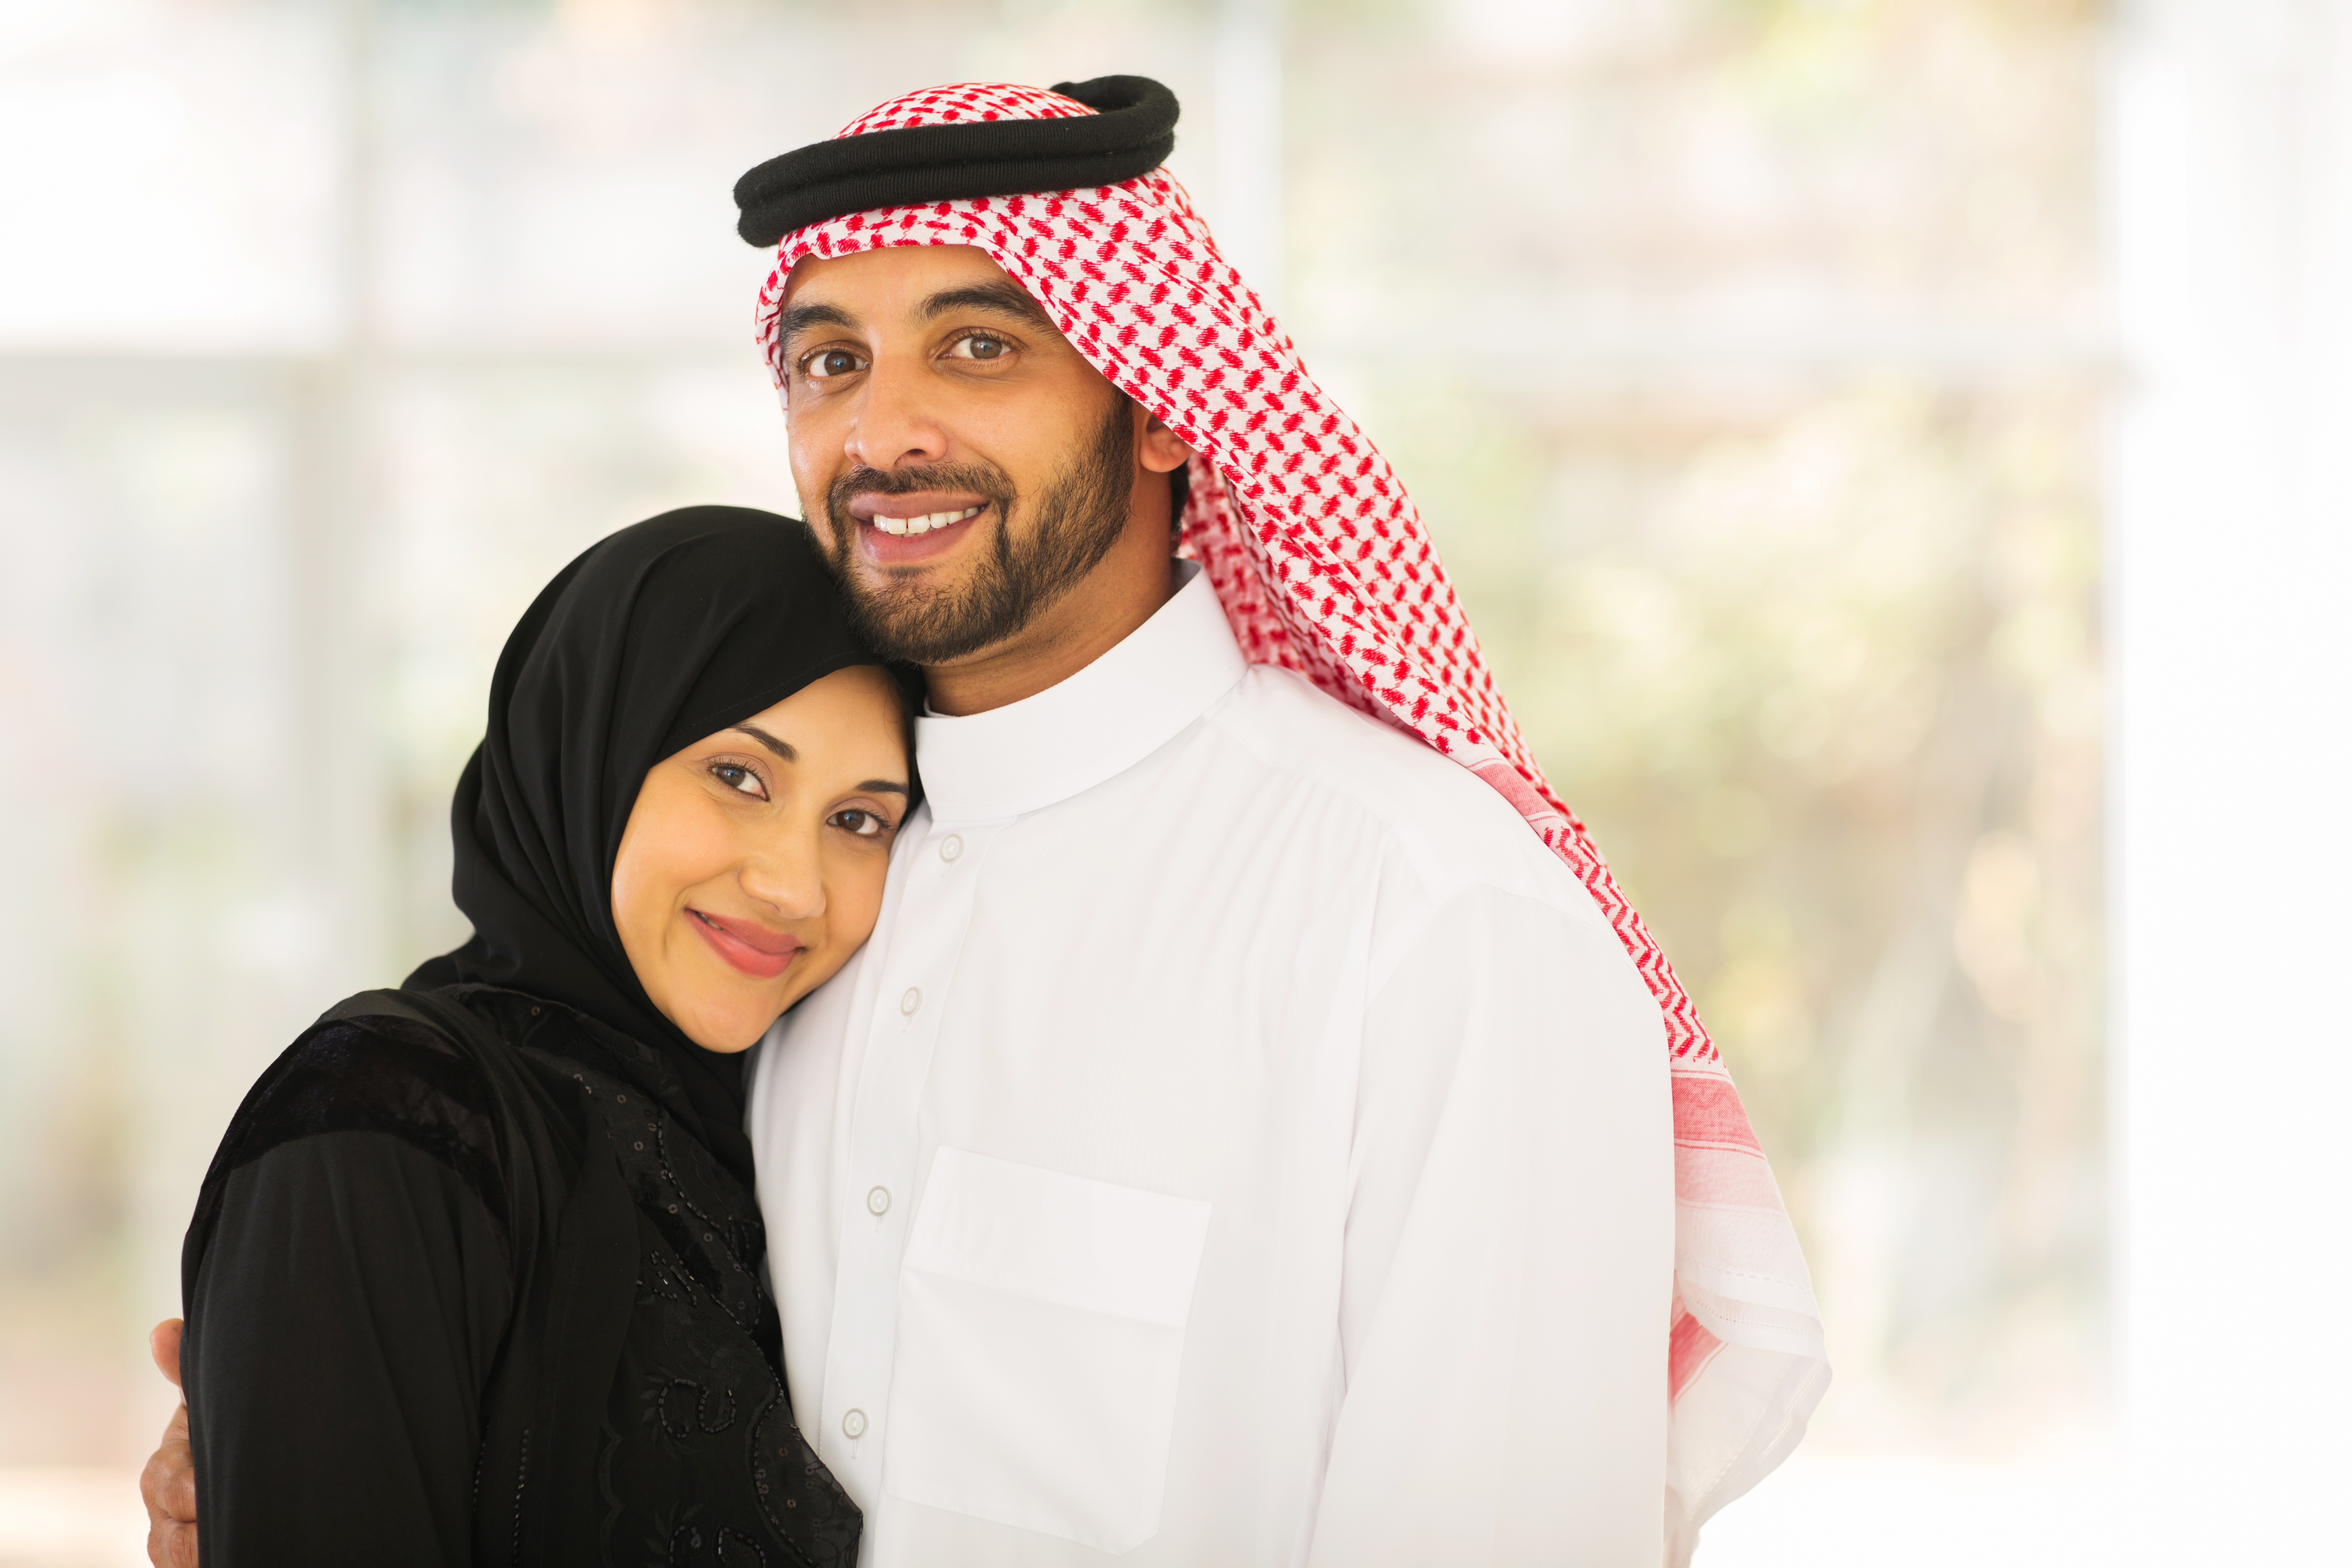 muslim single men in washburn Muslimfriends is an online muslim dating site for muslim men seeking muslim women and muslim boys seeking muslim girls 100% free register to view thousands profiles to date single muslim male or muslim female.